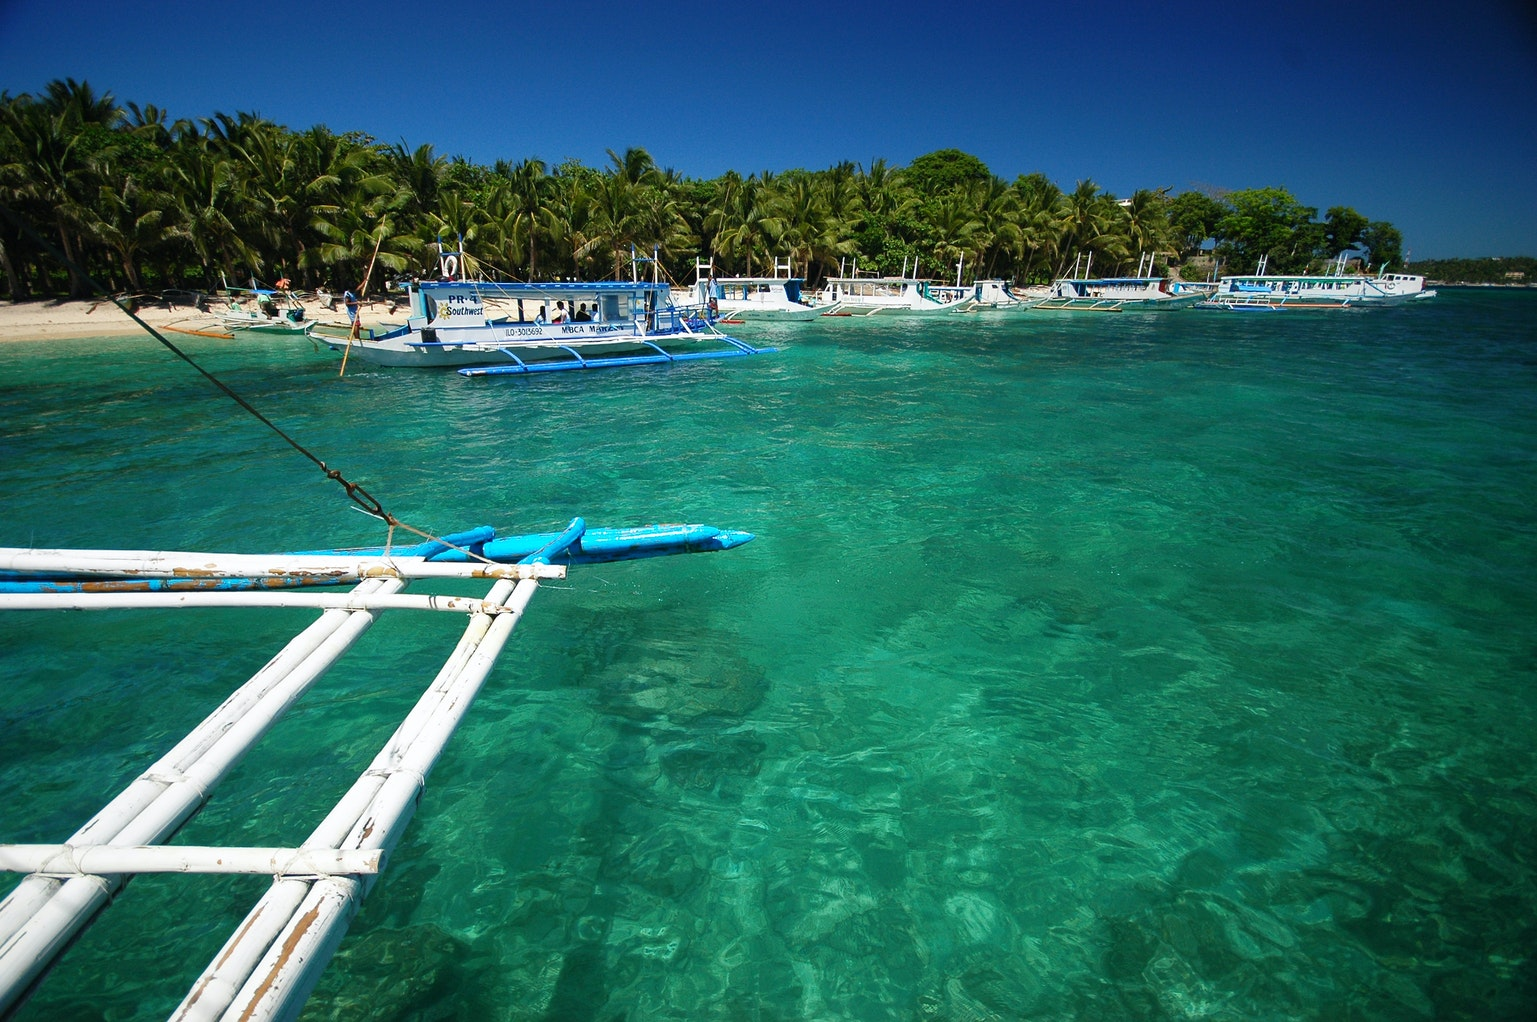 4 Days 3 Nights Cebu City Attractions, Highlands, Island and Marine Sanctuary Tour Package - day 3